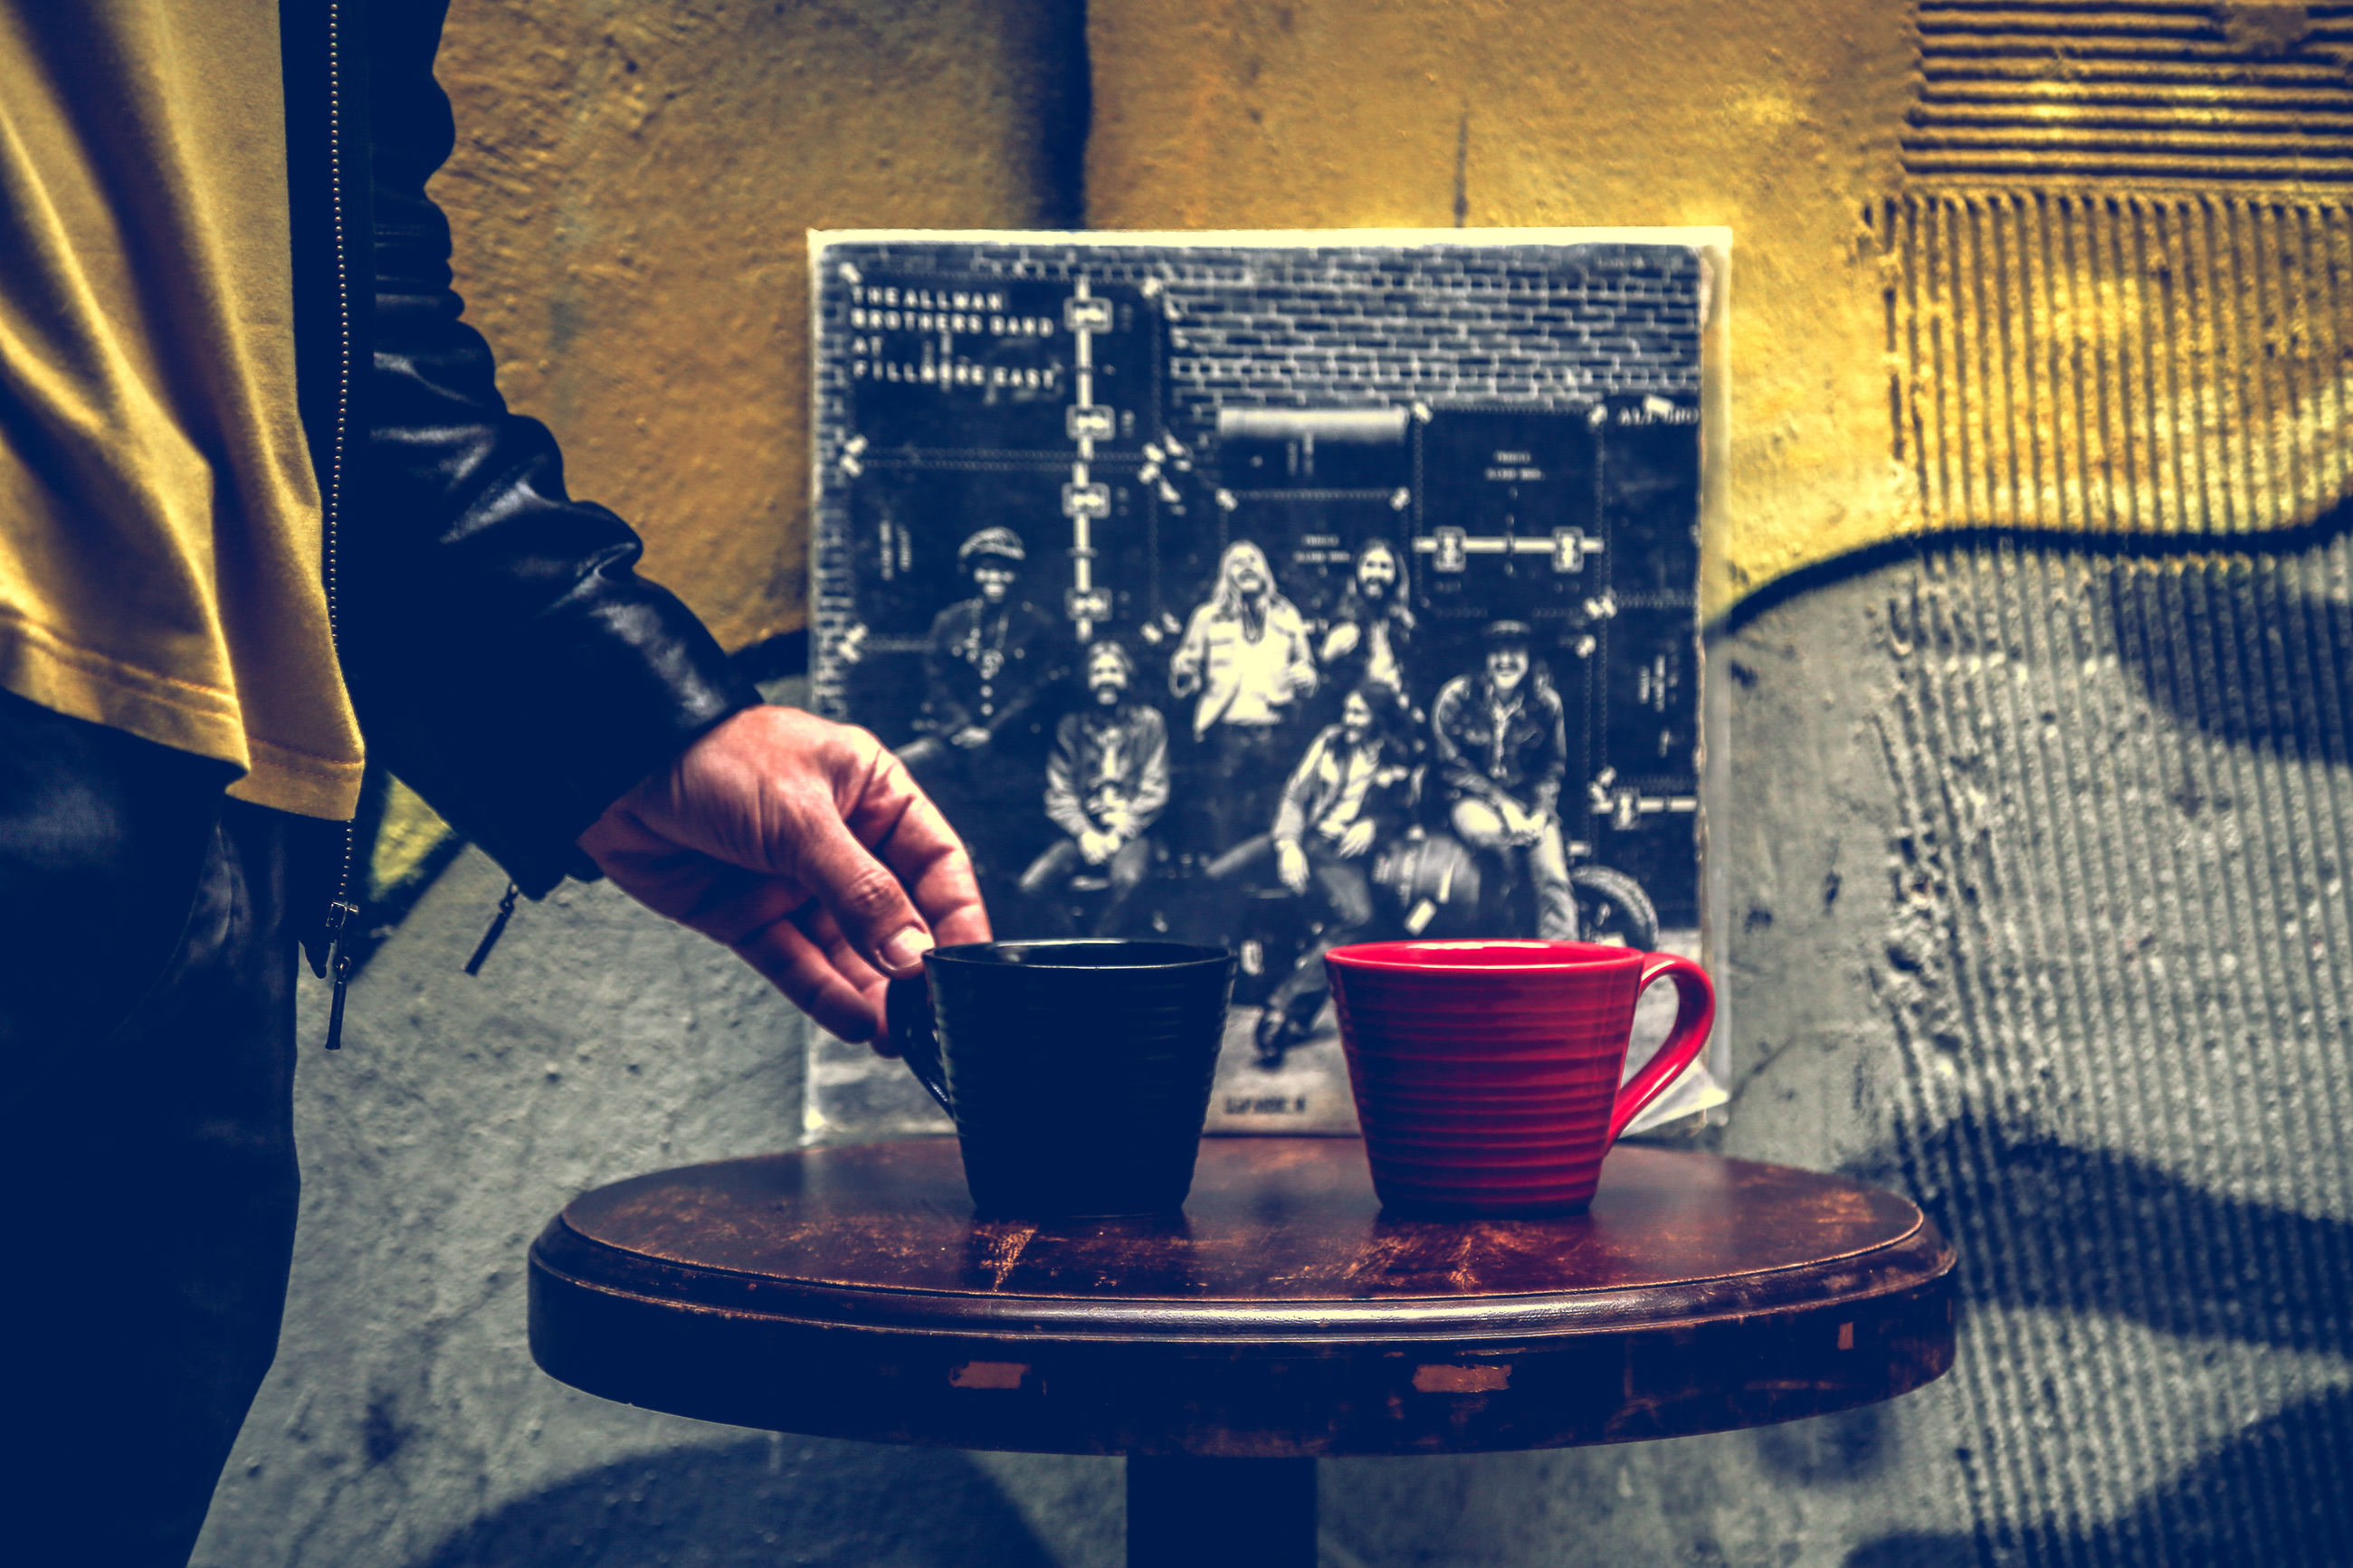 coffee - drink, human hand, human body part, coffee cup, serving food and drinks, drink, people, one person, indoors, adult, adults only, day